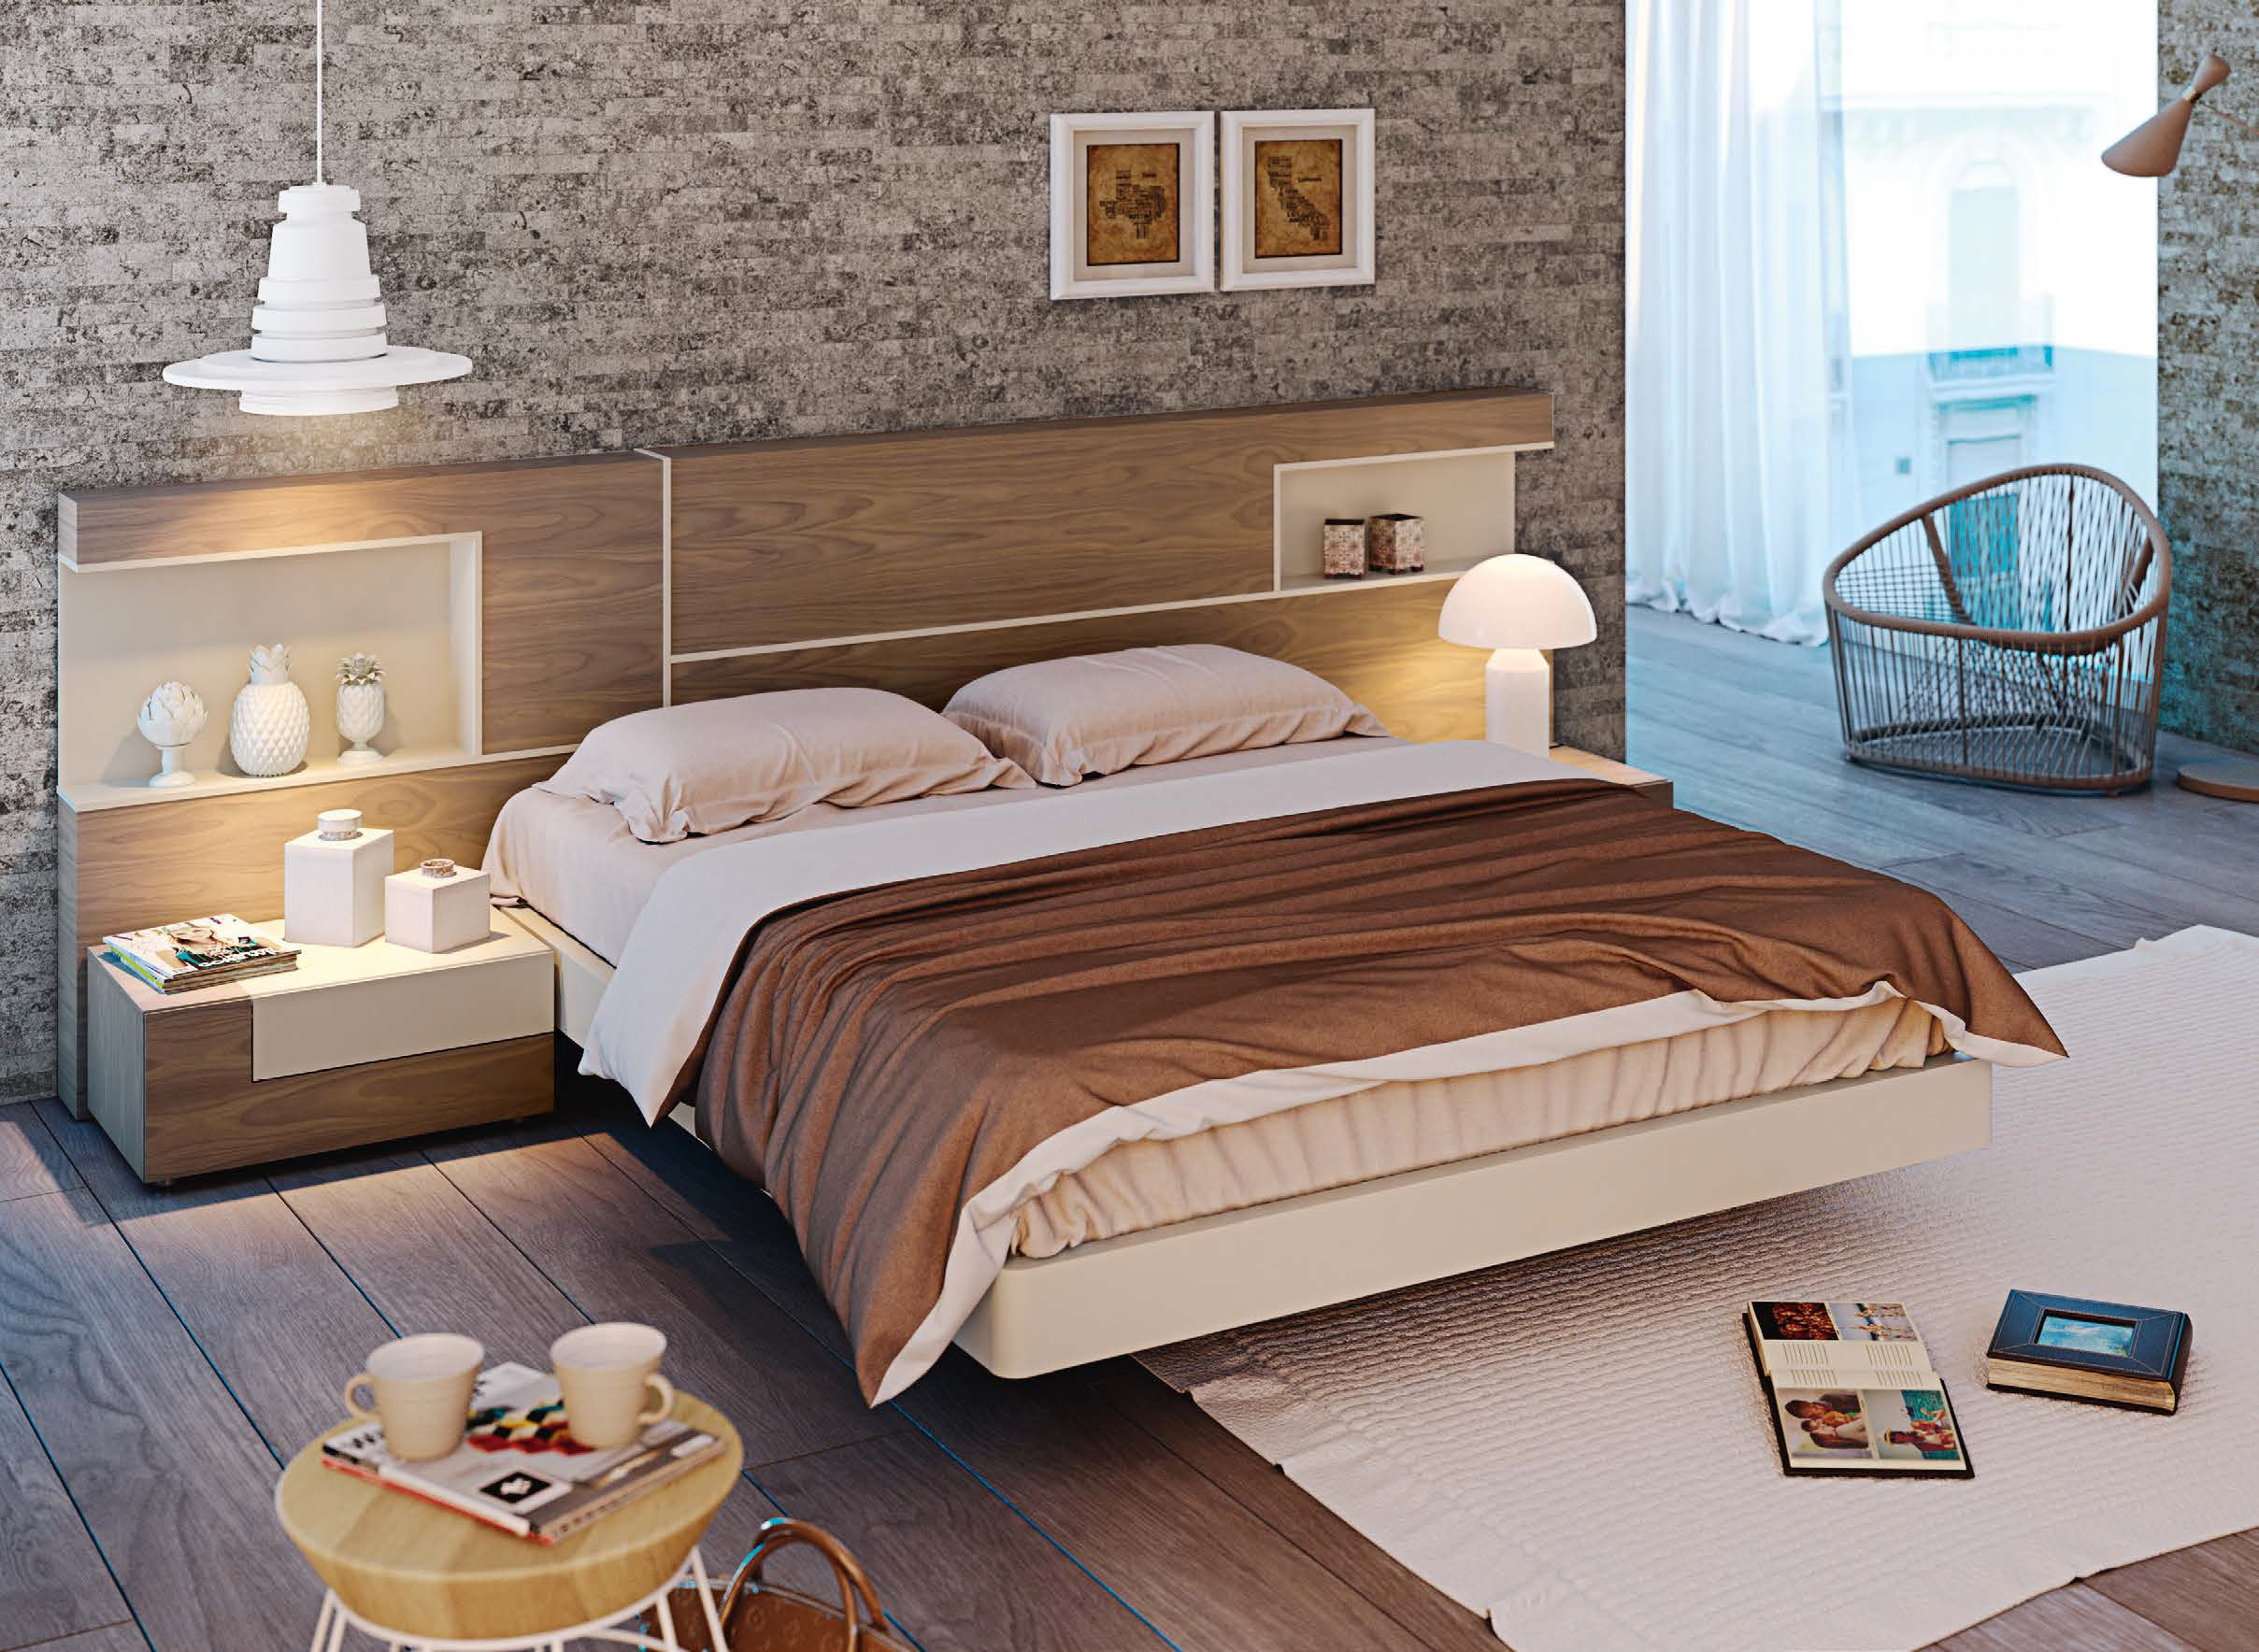 moderno-1-YOU-AND-ME-muebles-paco-caballero-633-5c9cfce2a570d